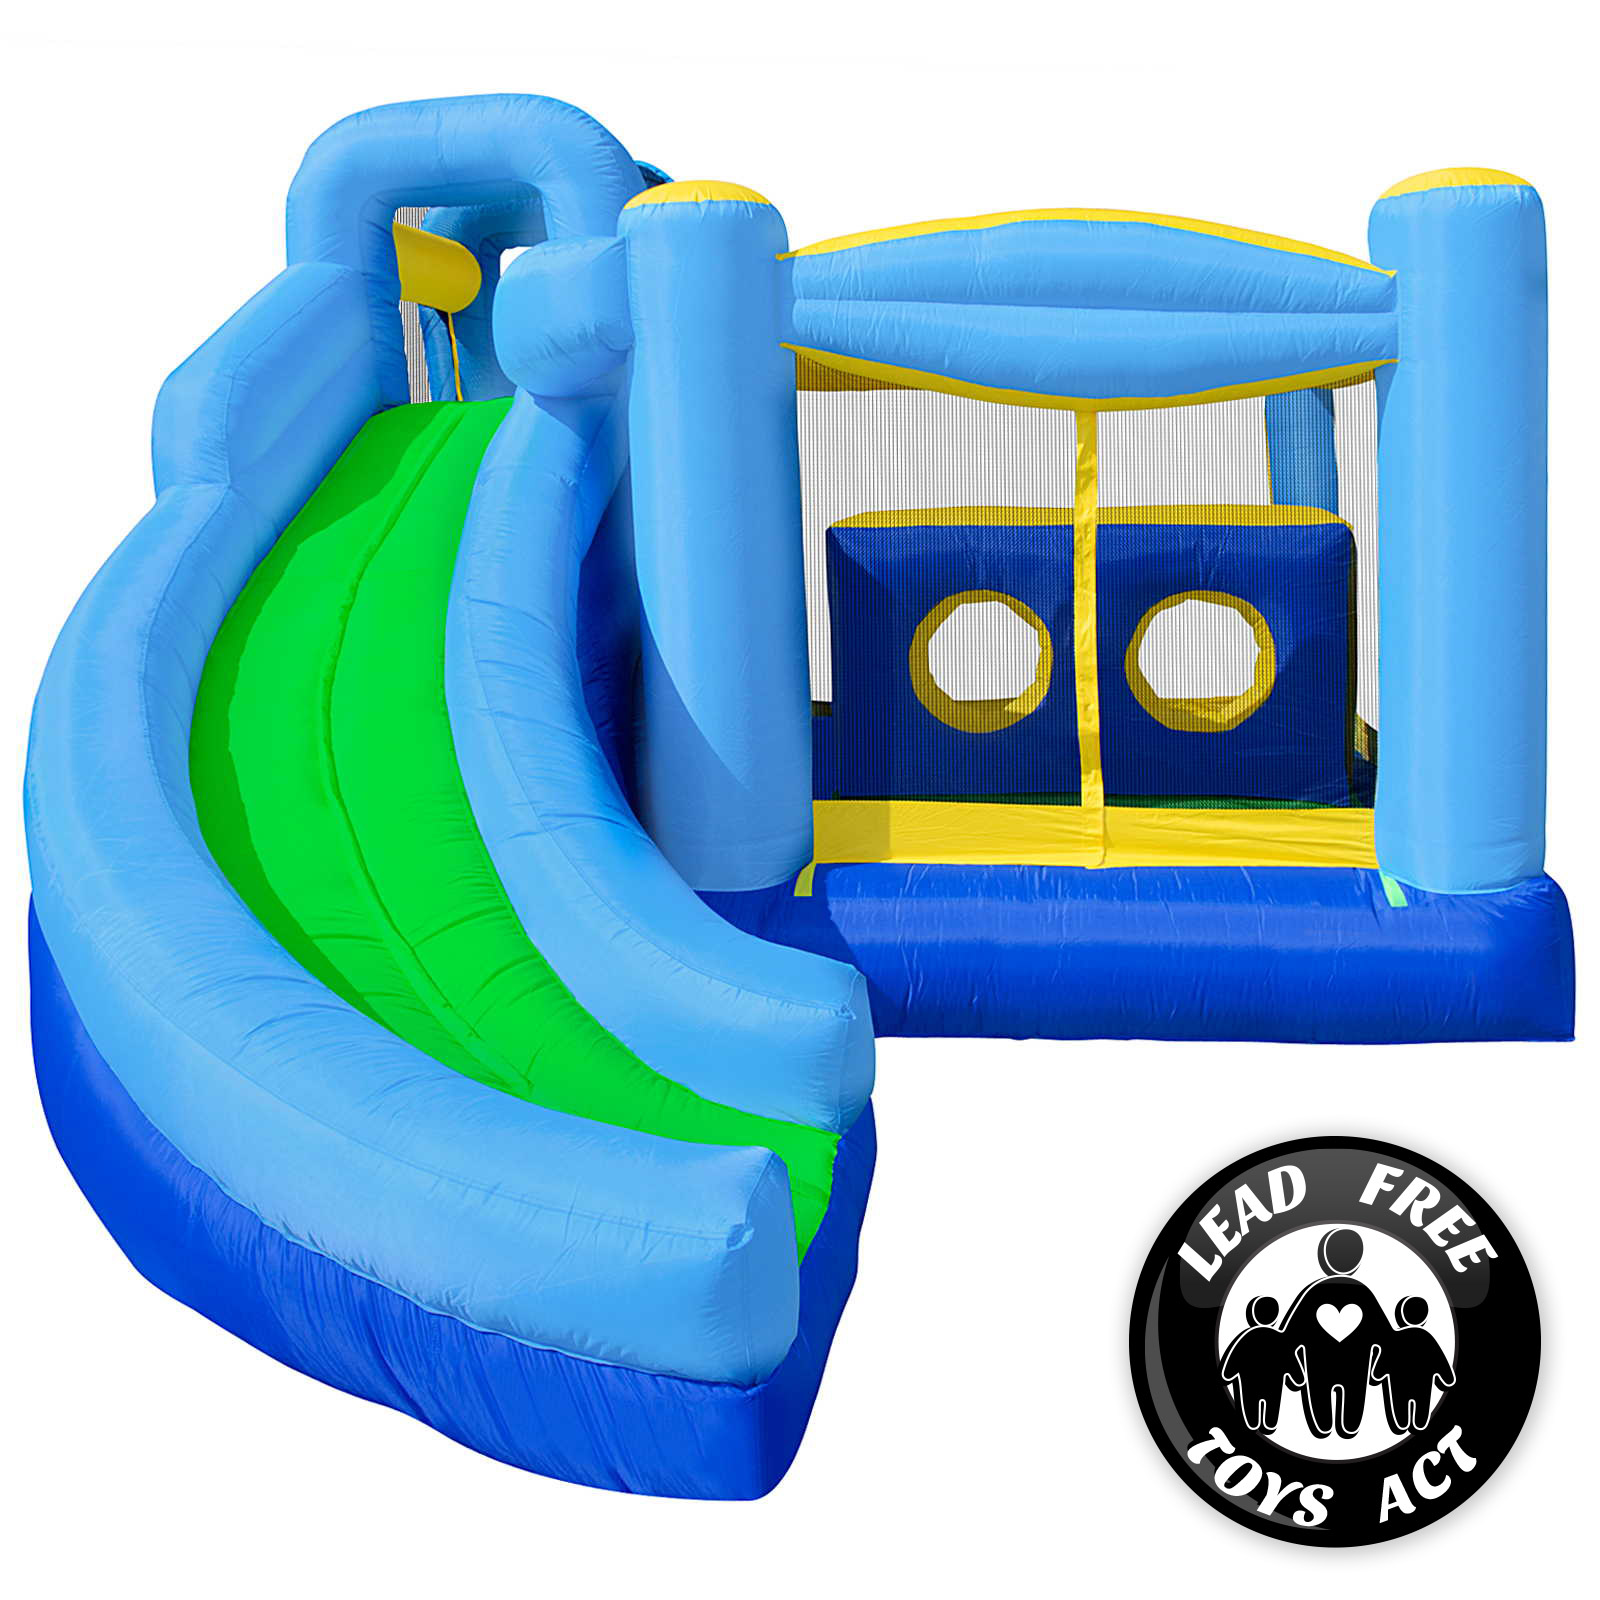 Bounce House Blower : Quad combo bounce house jumper castle bouncer inflatable